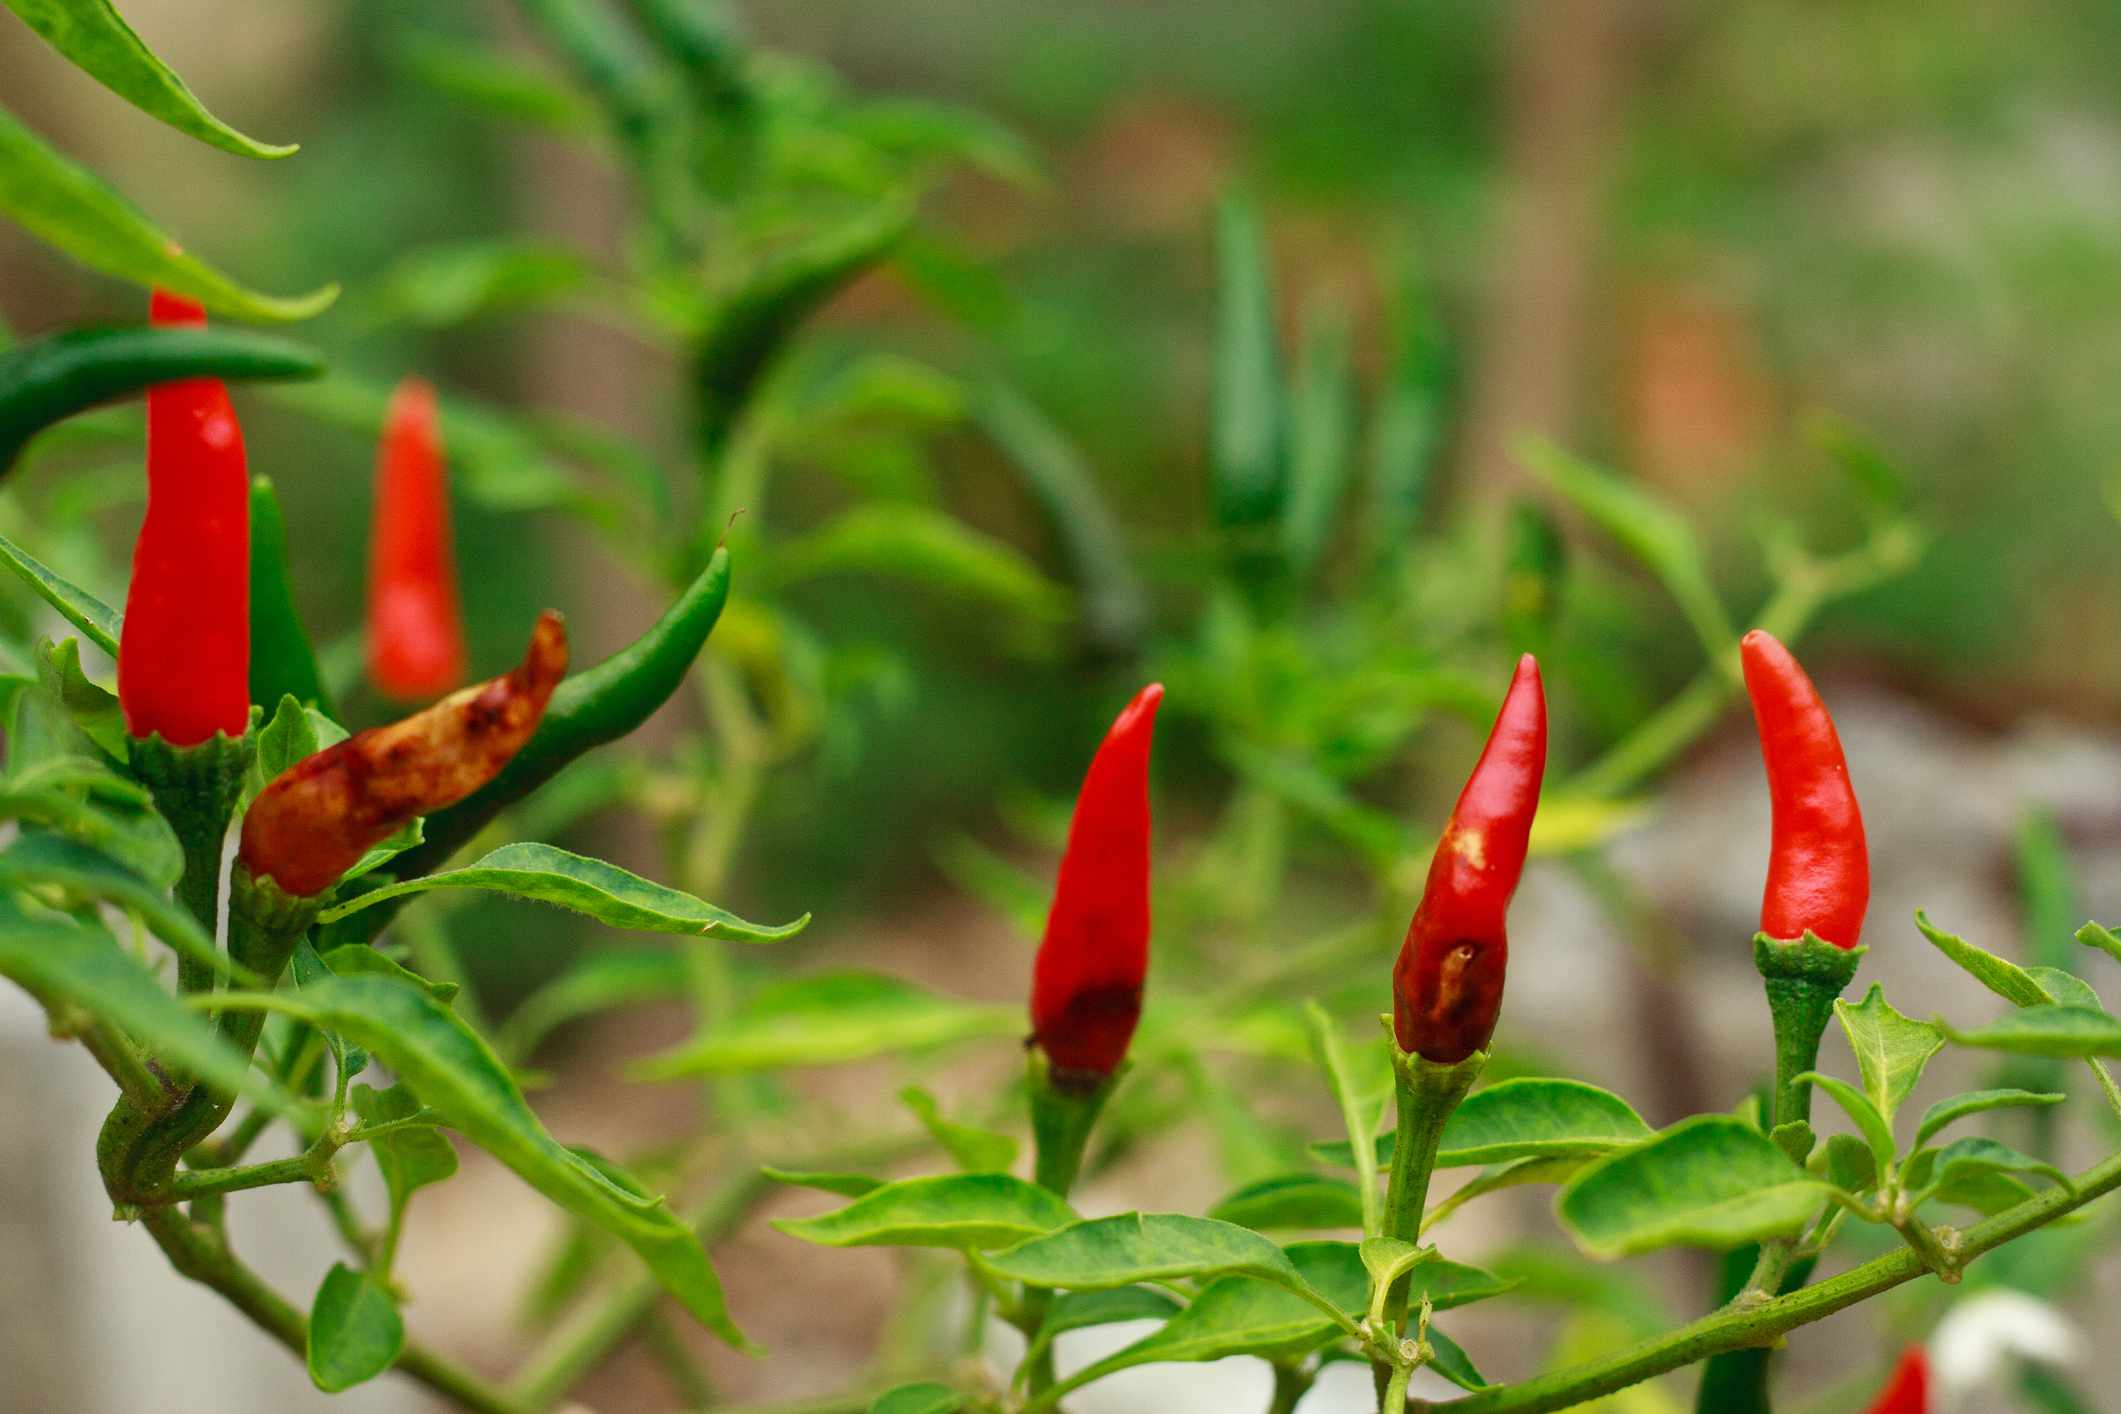 Anthracnose disease in chili peppers